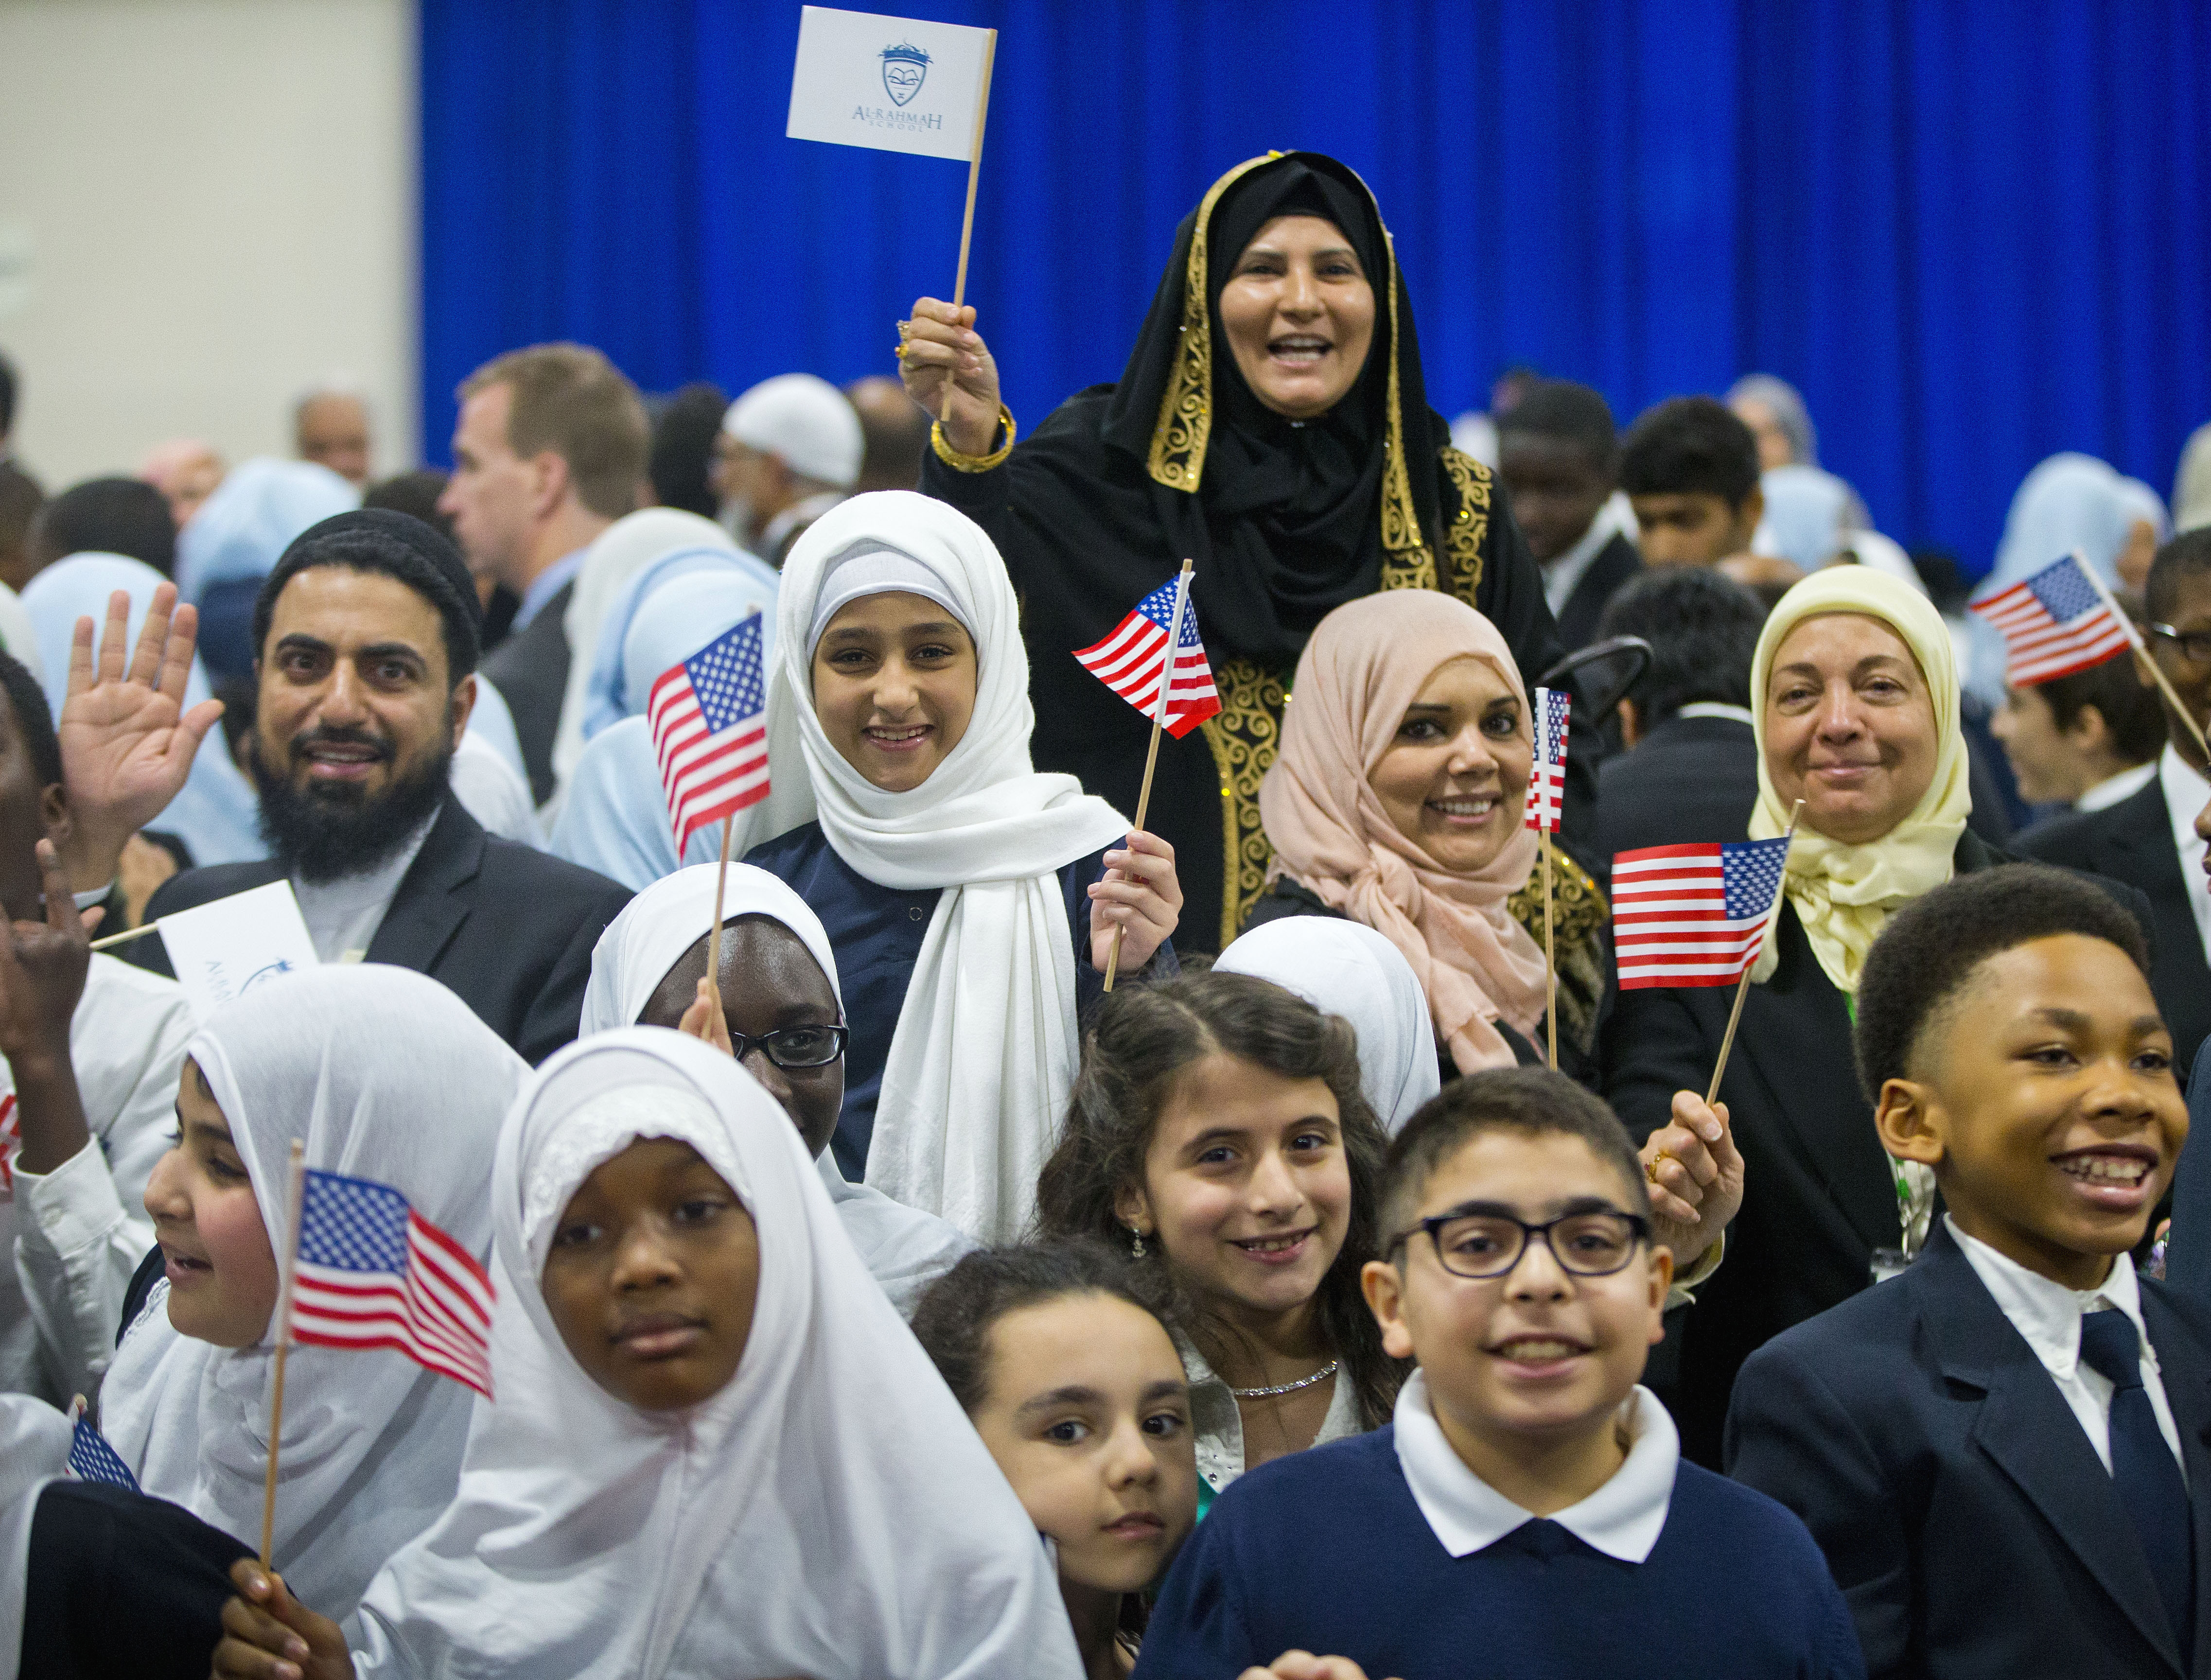 Children from Al-Rahmah school and other guests react after seeing President Barack Obama during his visit to the Islamic Society of Baltimore, on Feb. 3, 2016.